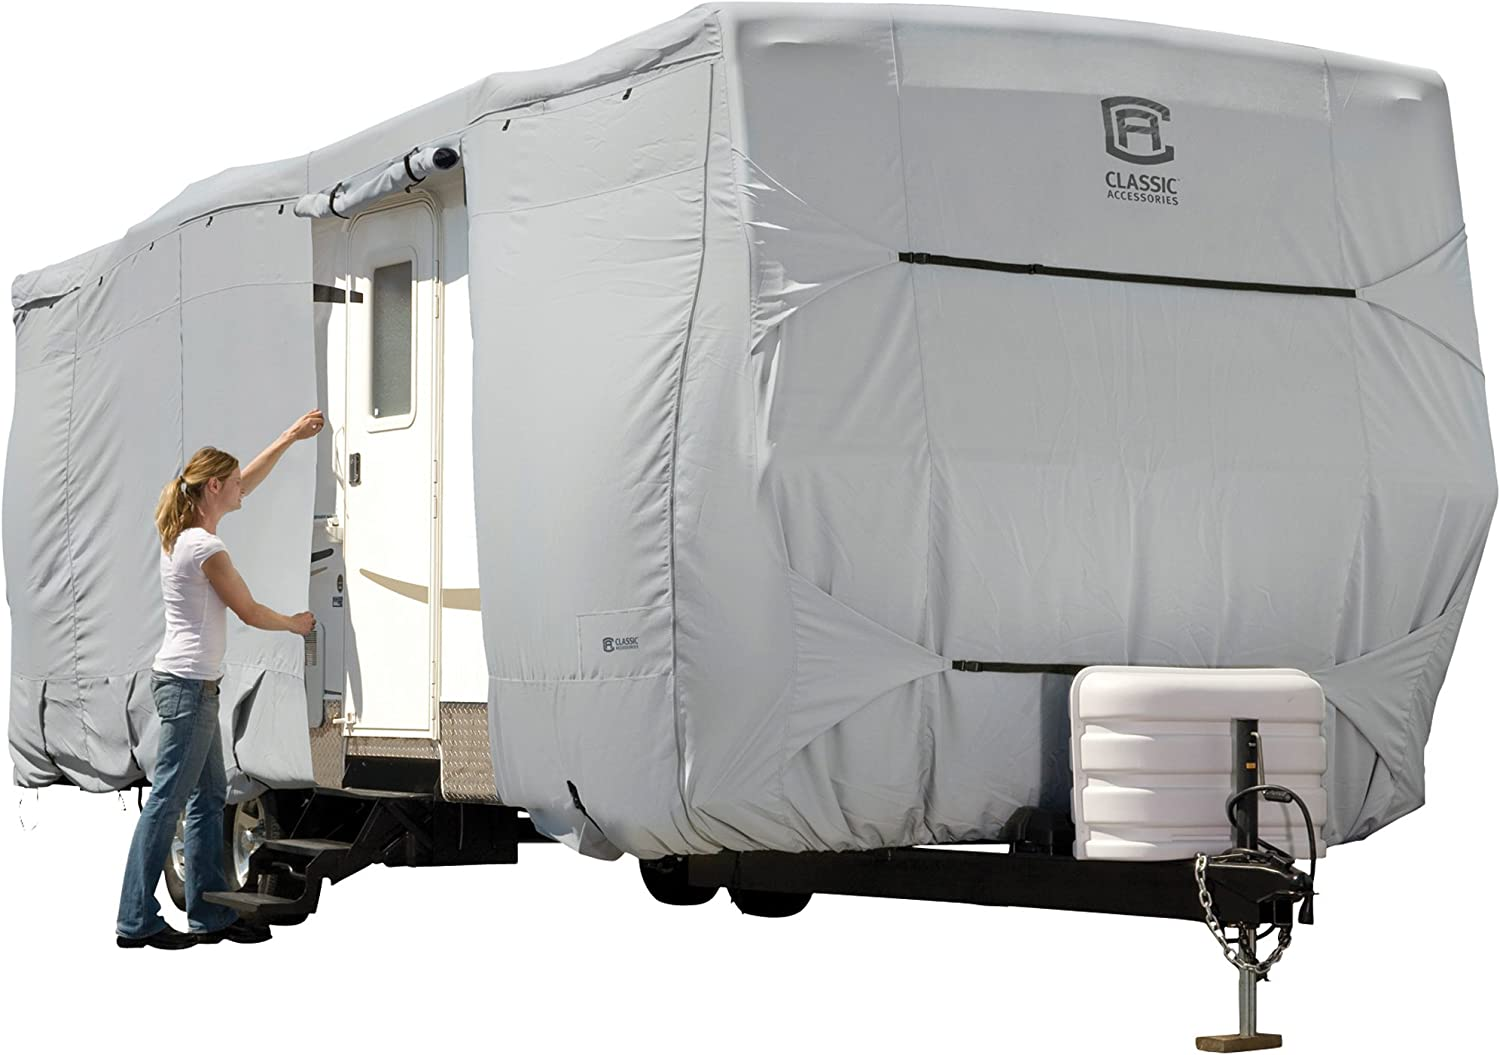 Classic Accessories PermaPRO Lightweight Ripstop and Water Repellent Cover, for 27' - 30' Travel Trailers, 80-138-181001-00 , Grey